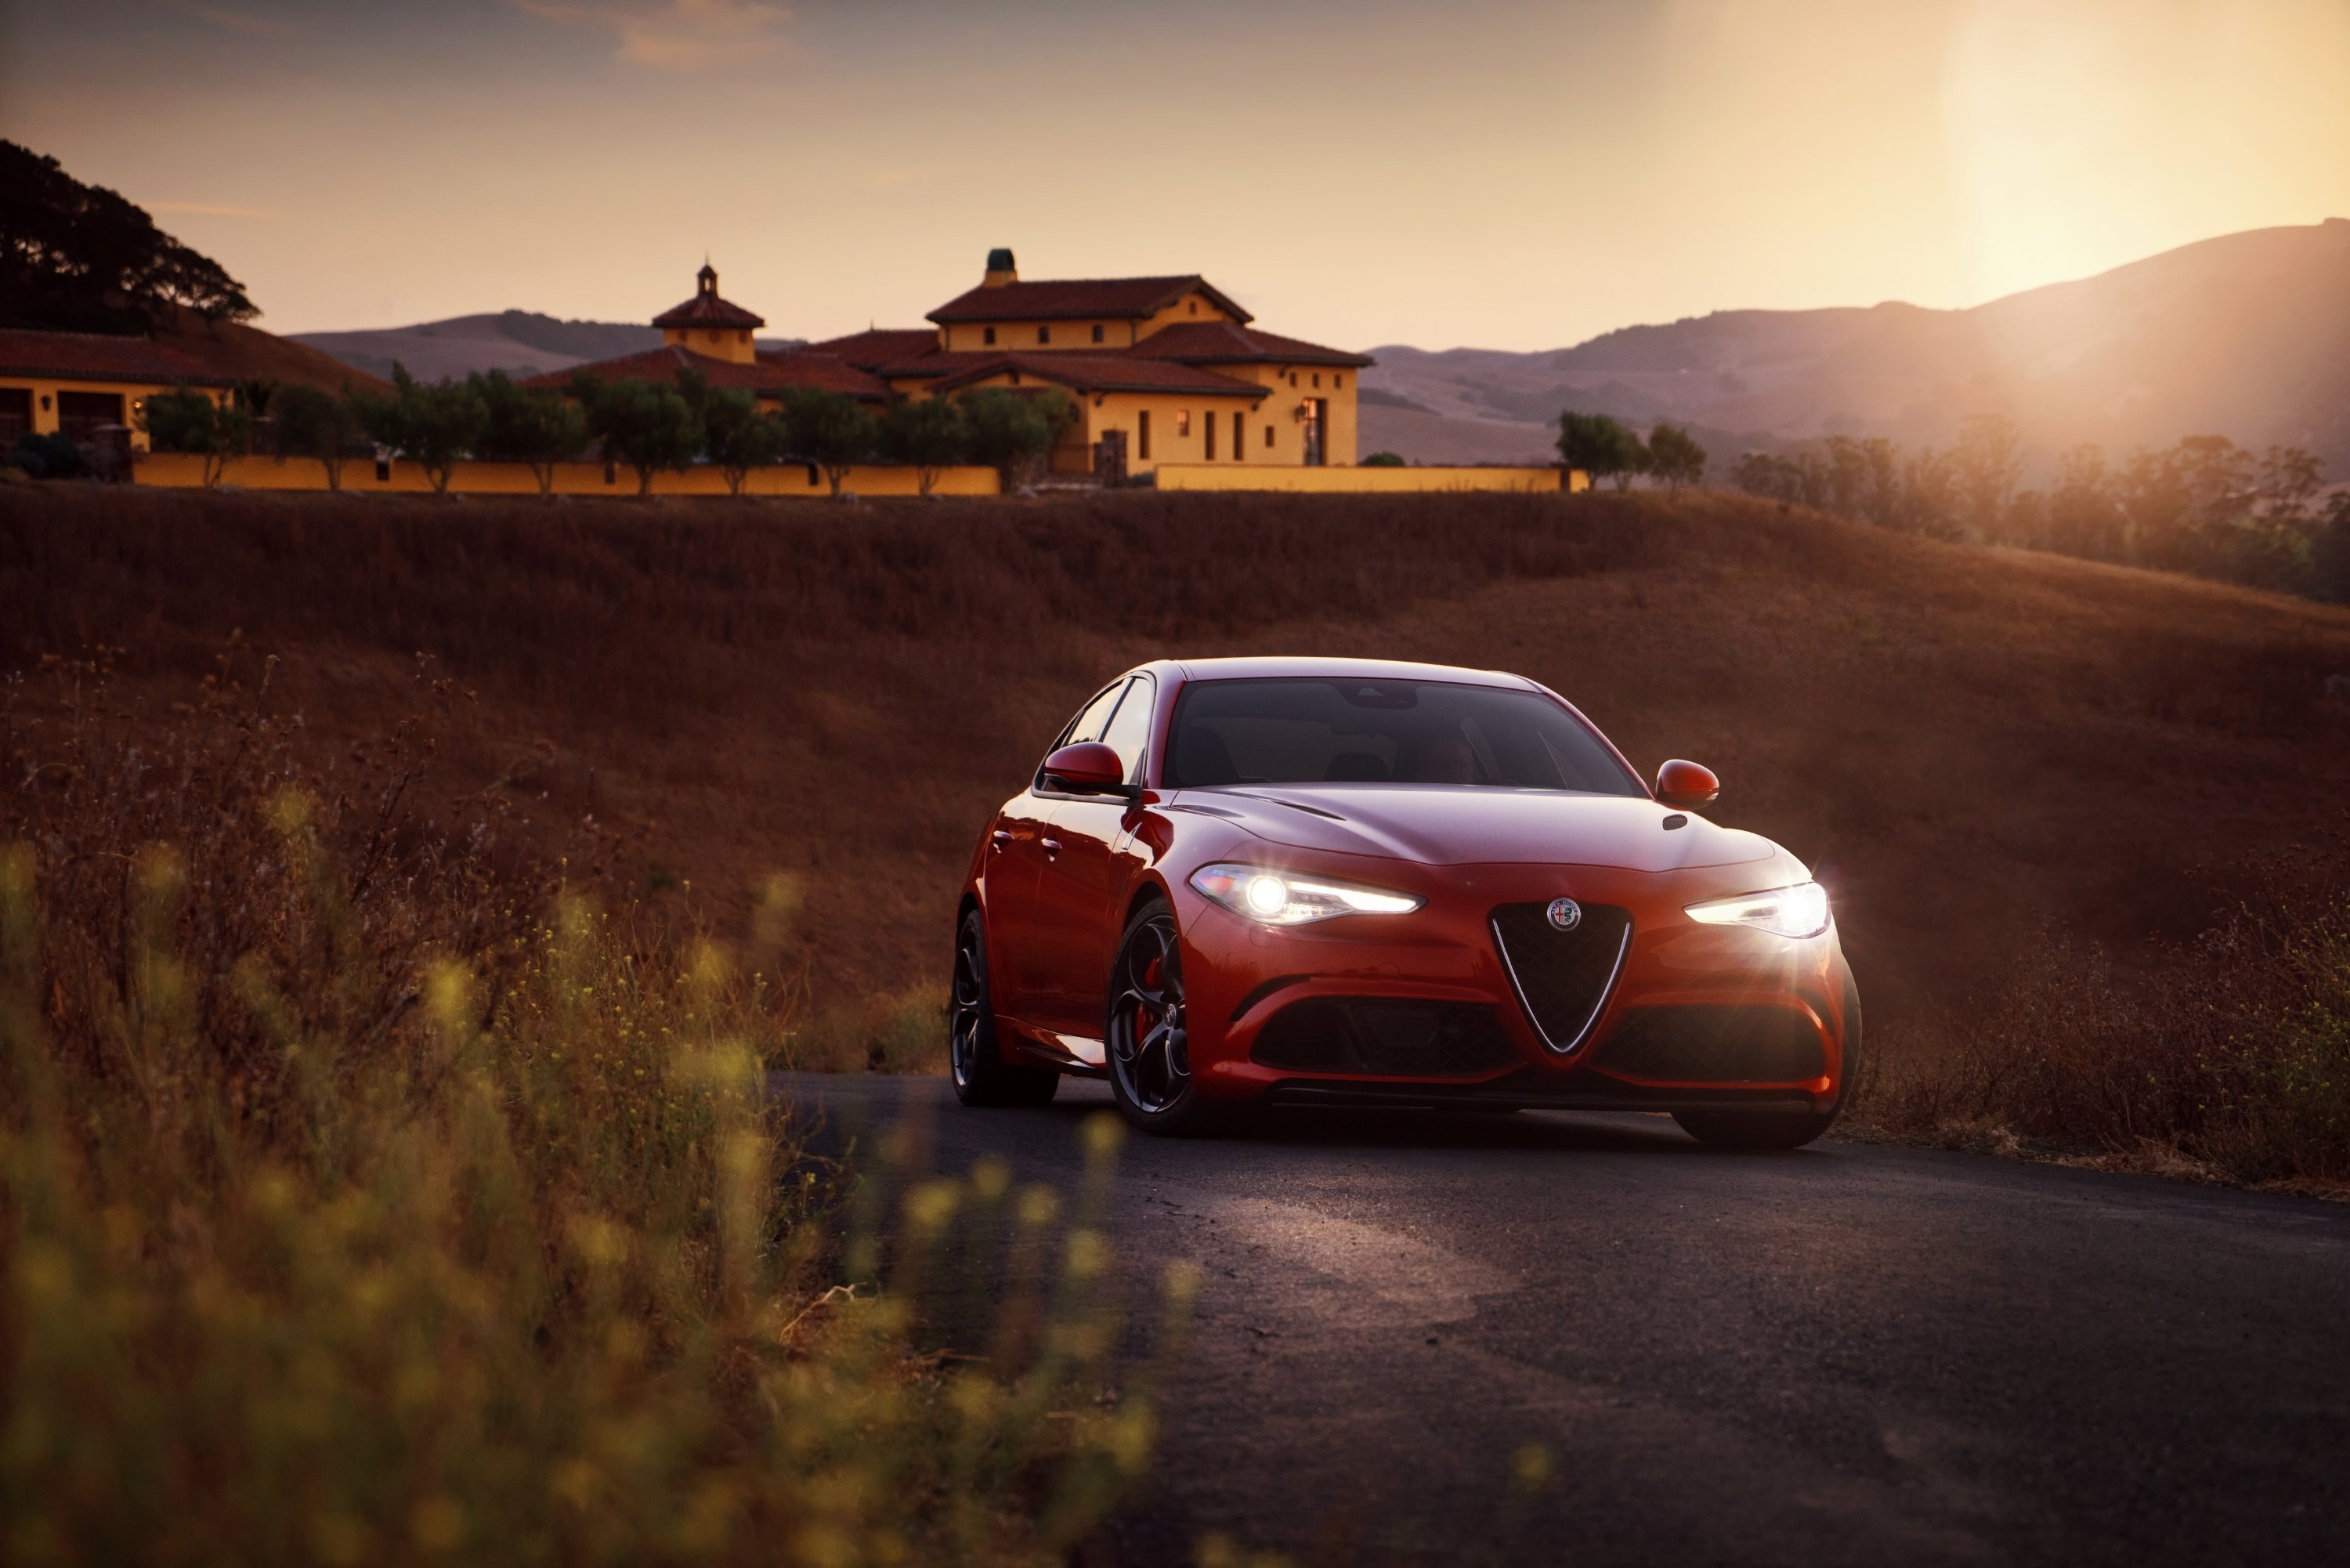 Alfa Romeo Giulia Wallpapers and Background Images   stmednet 3000x2002